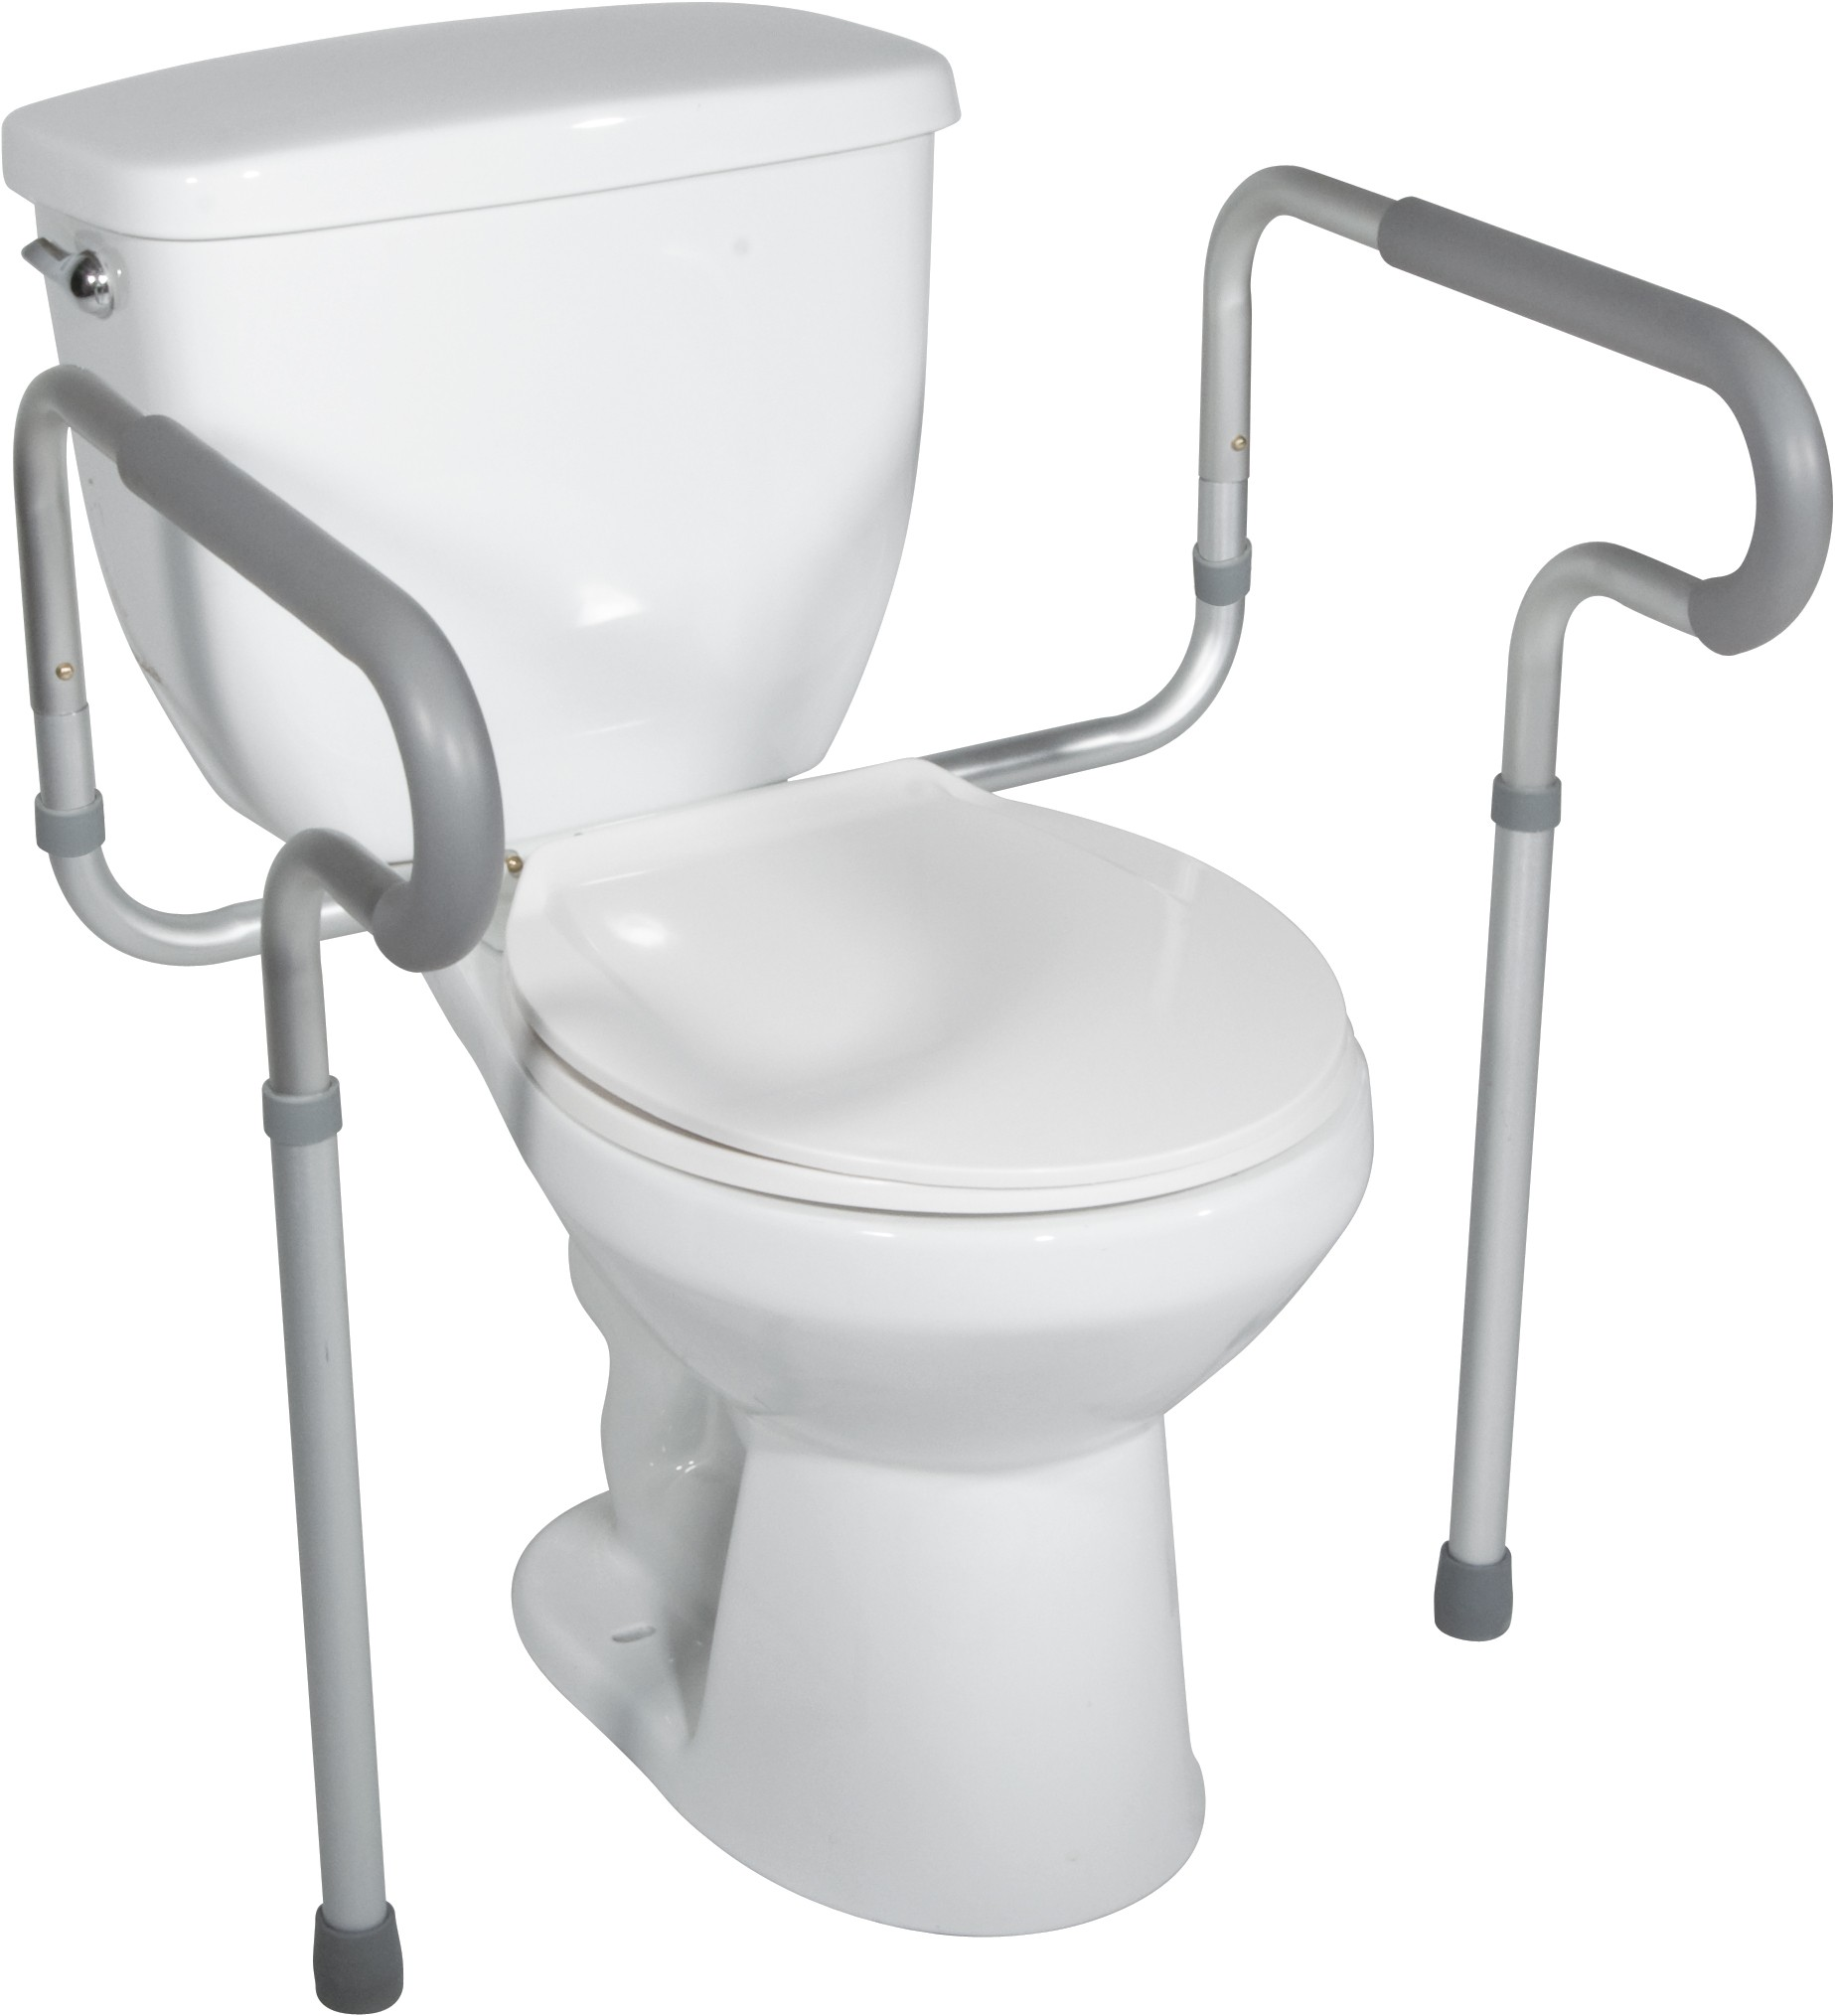 Outstanding Toilet Safety Frame With Padded Arms Bralicious Painted Fabric Chair Ideas Braliciousco